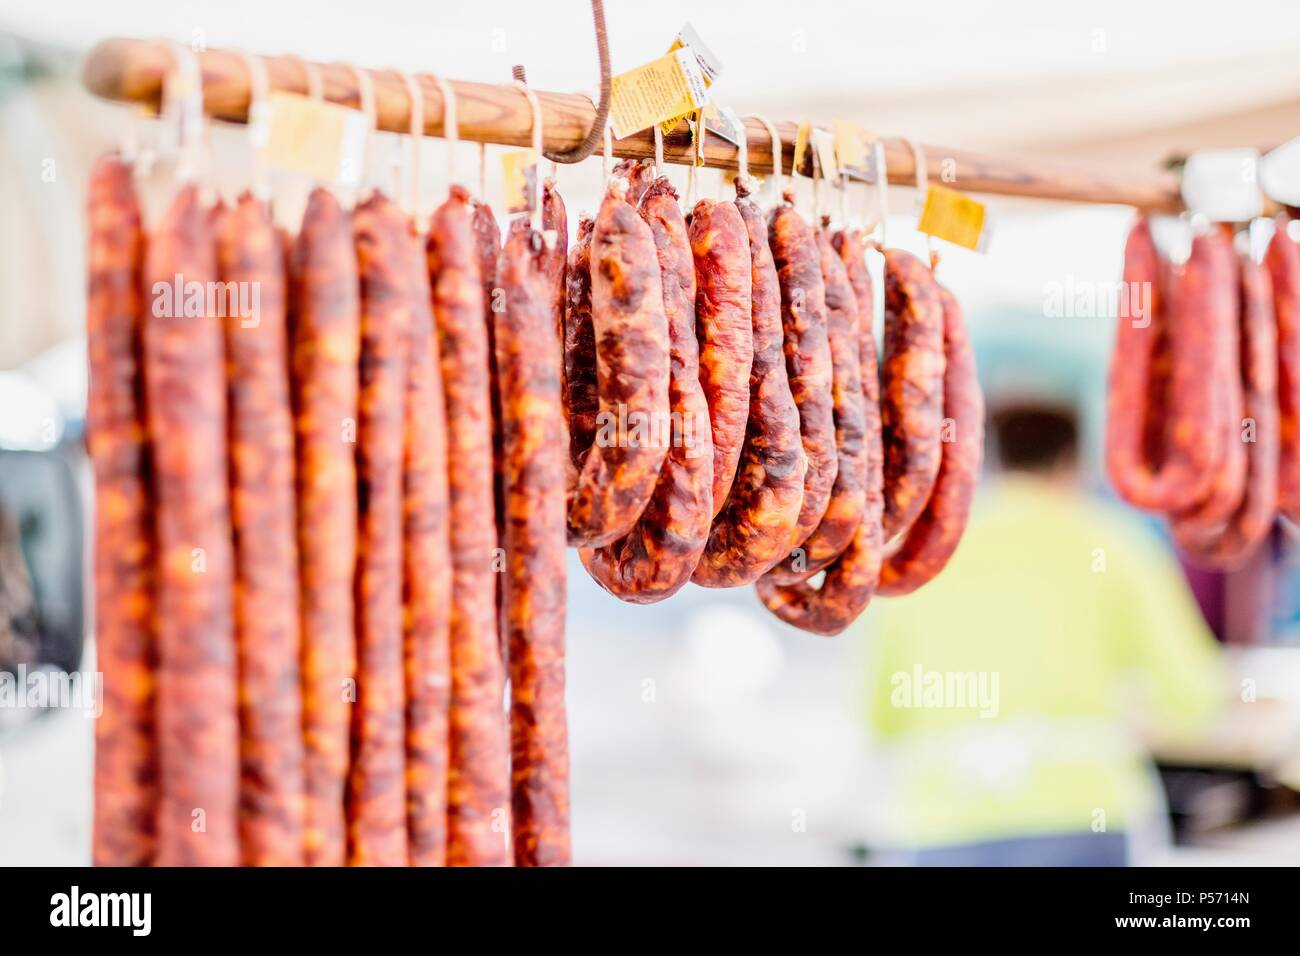 Many chorico sausages hunged on wooden stick at open air market in Portugal - Stock Image